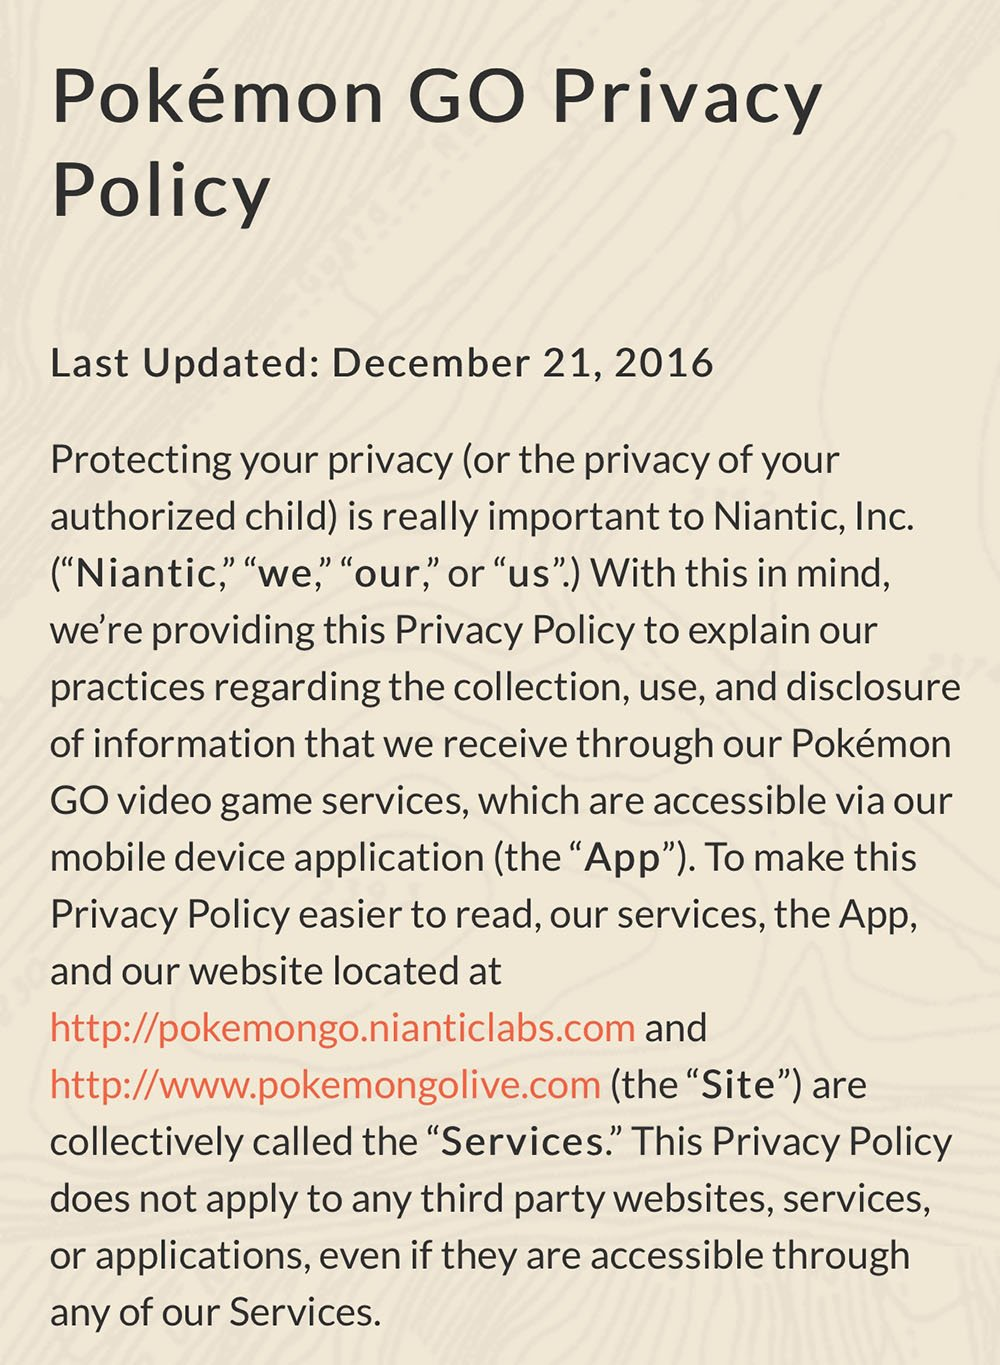 Screenshot from Pokemon GO Privacy Policy